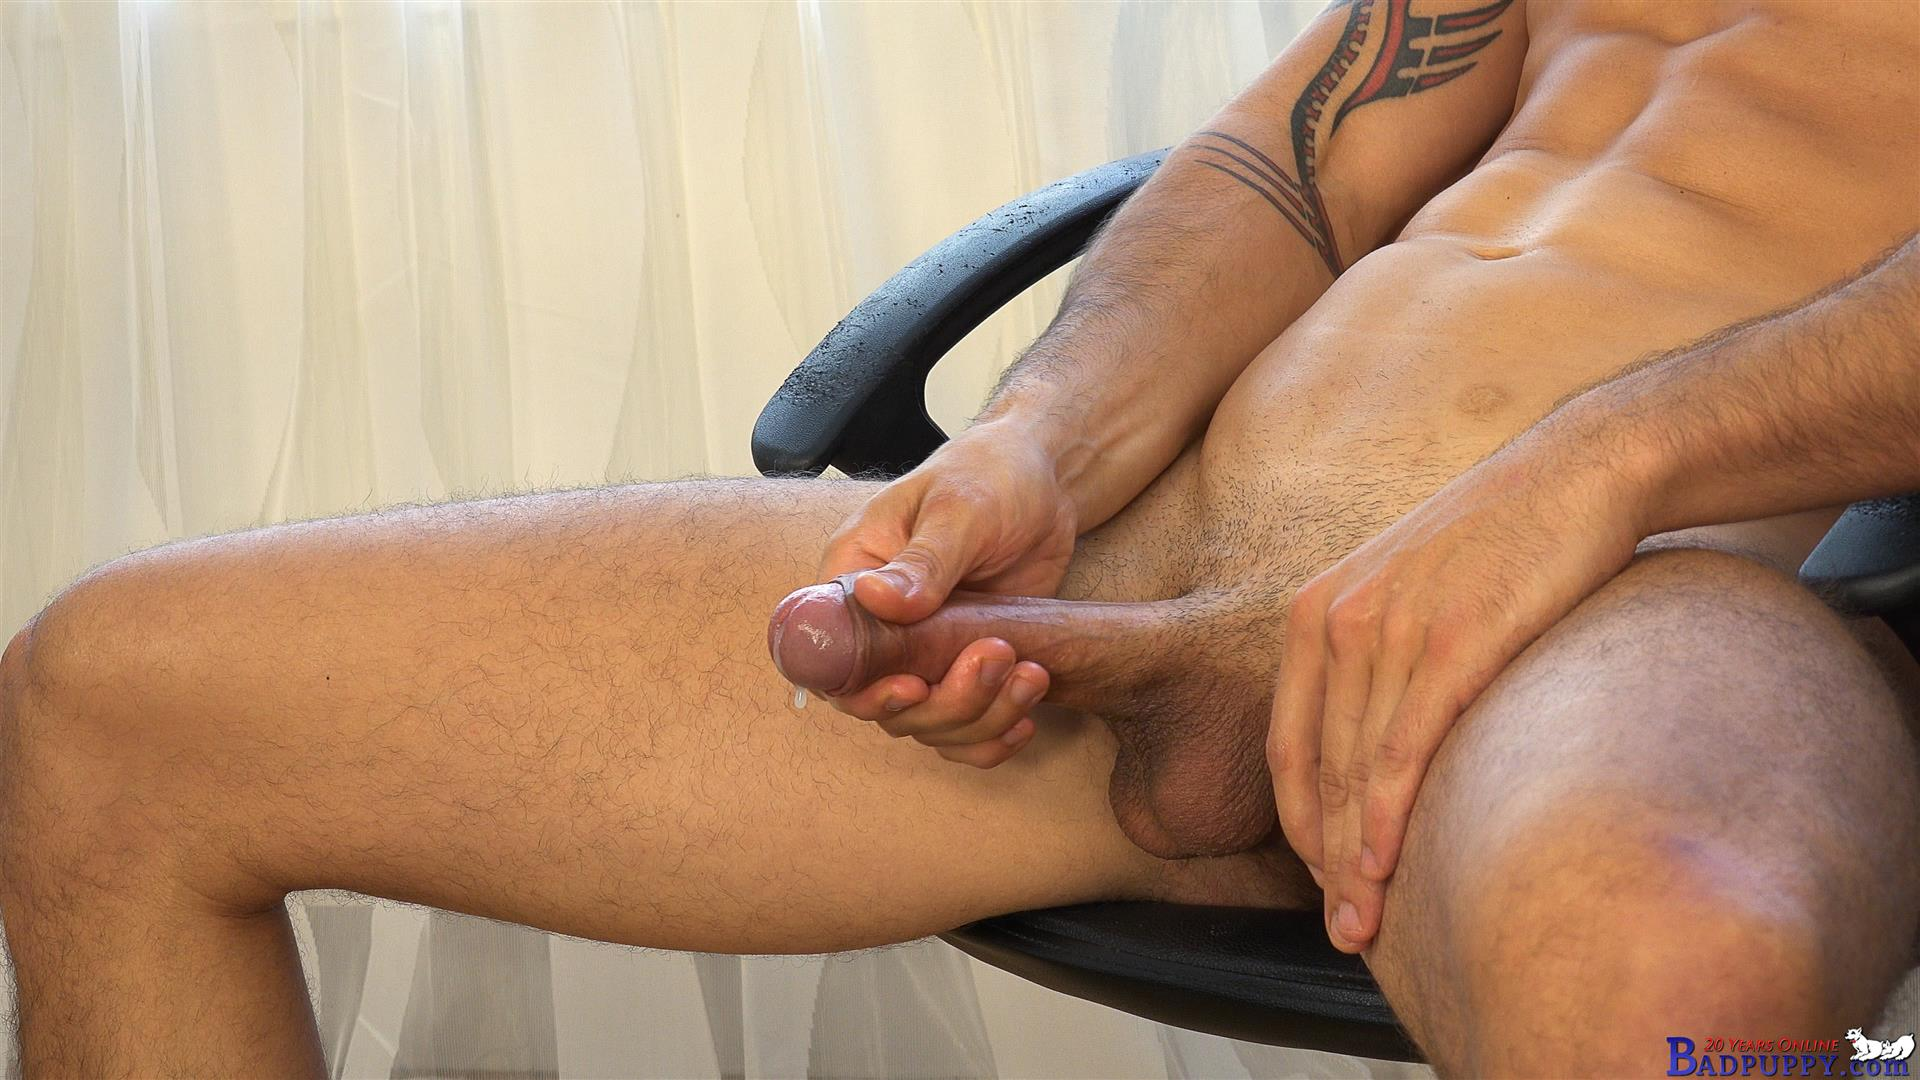 amateur gay sex escort milan